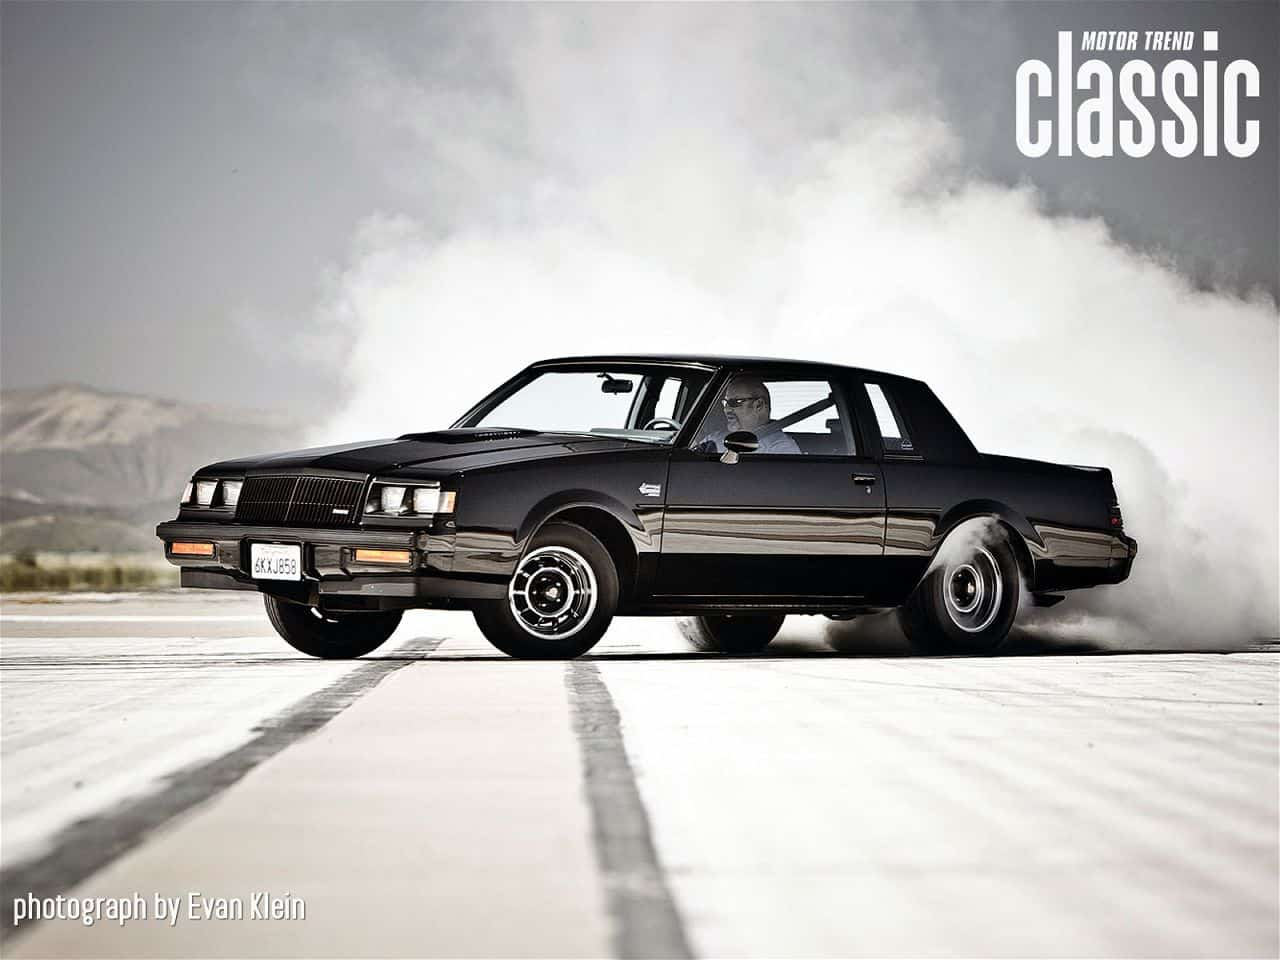 Fastest Cars Of The 80s - Buick GNX Grand National